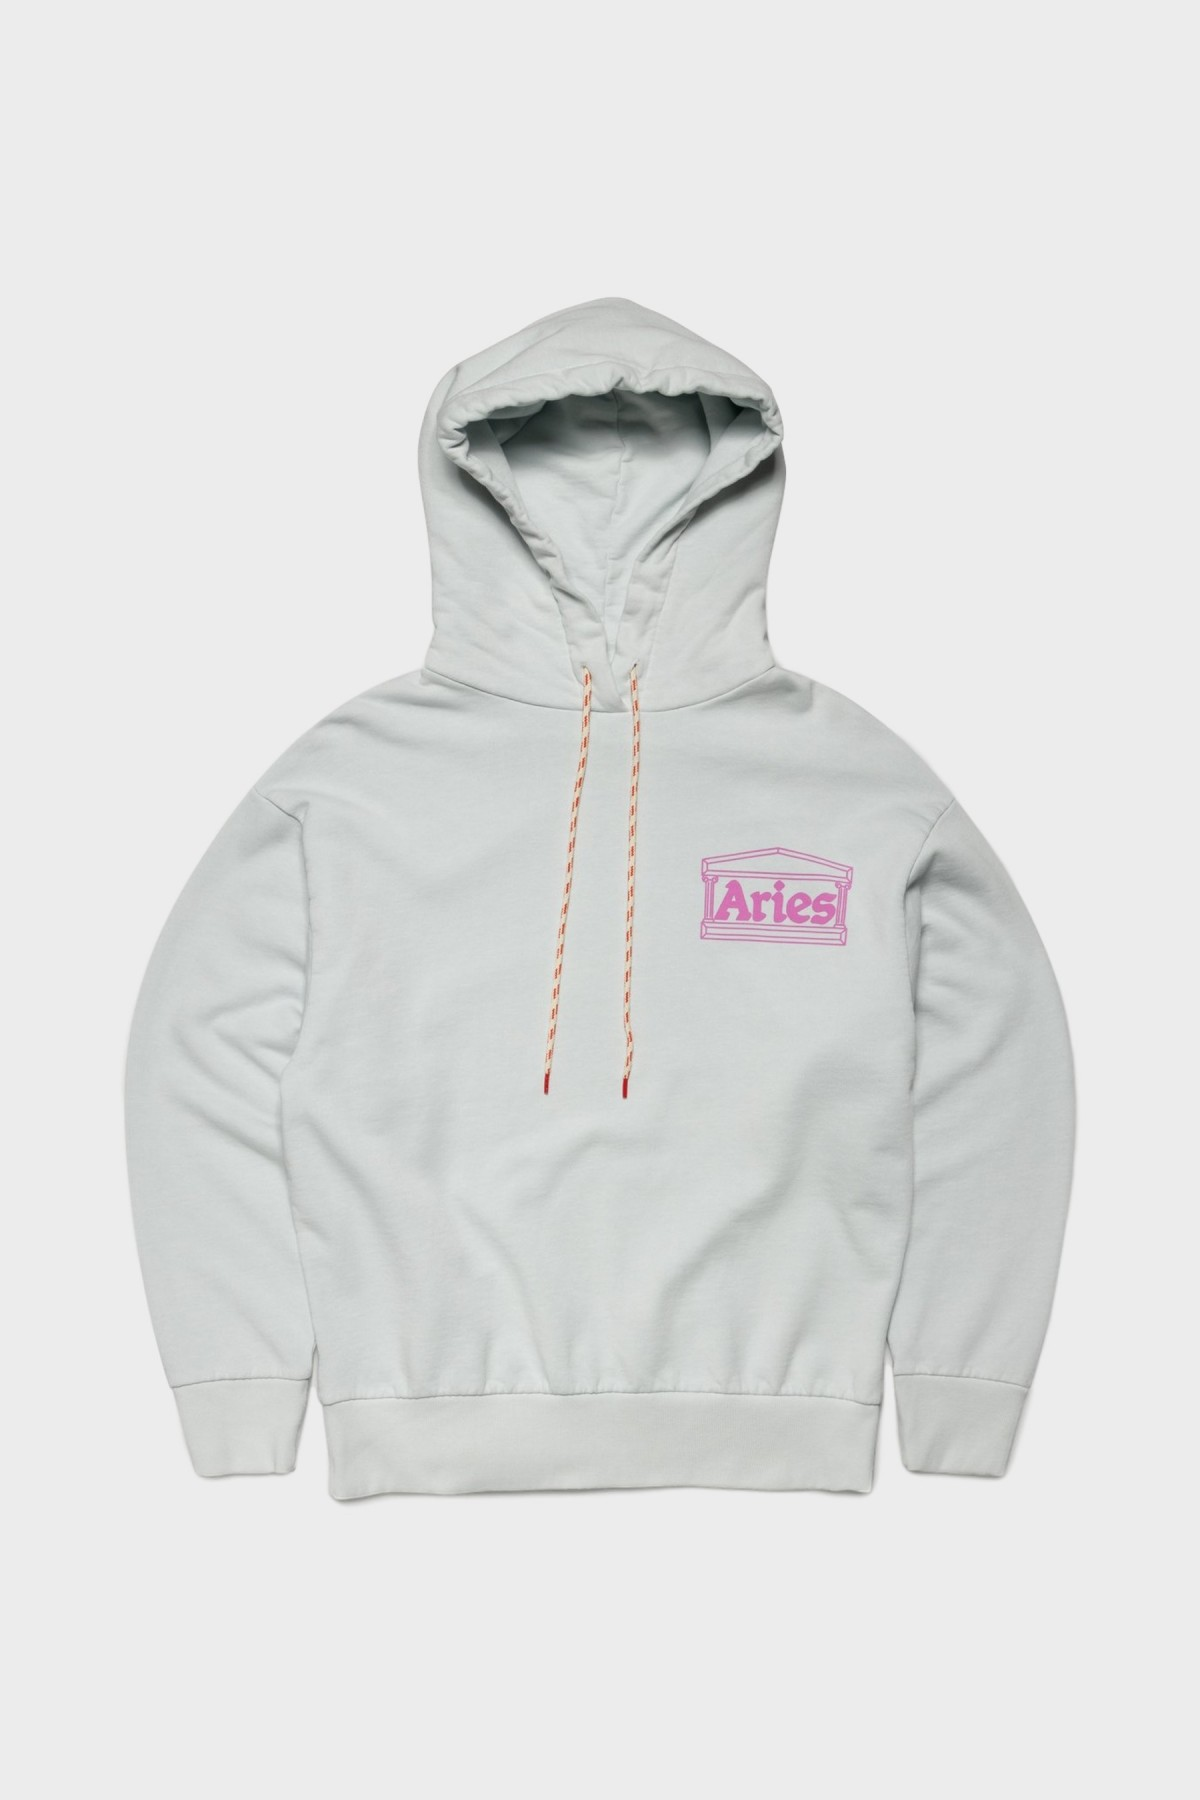 Aries Arise Hands Off Hoodie  in Pale Blue